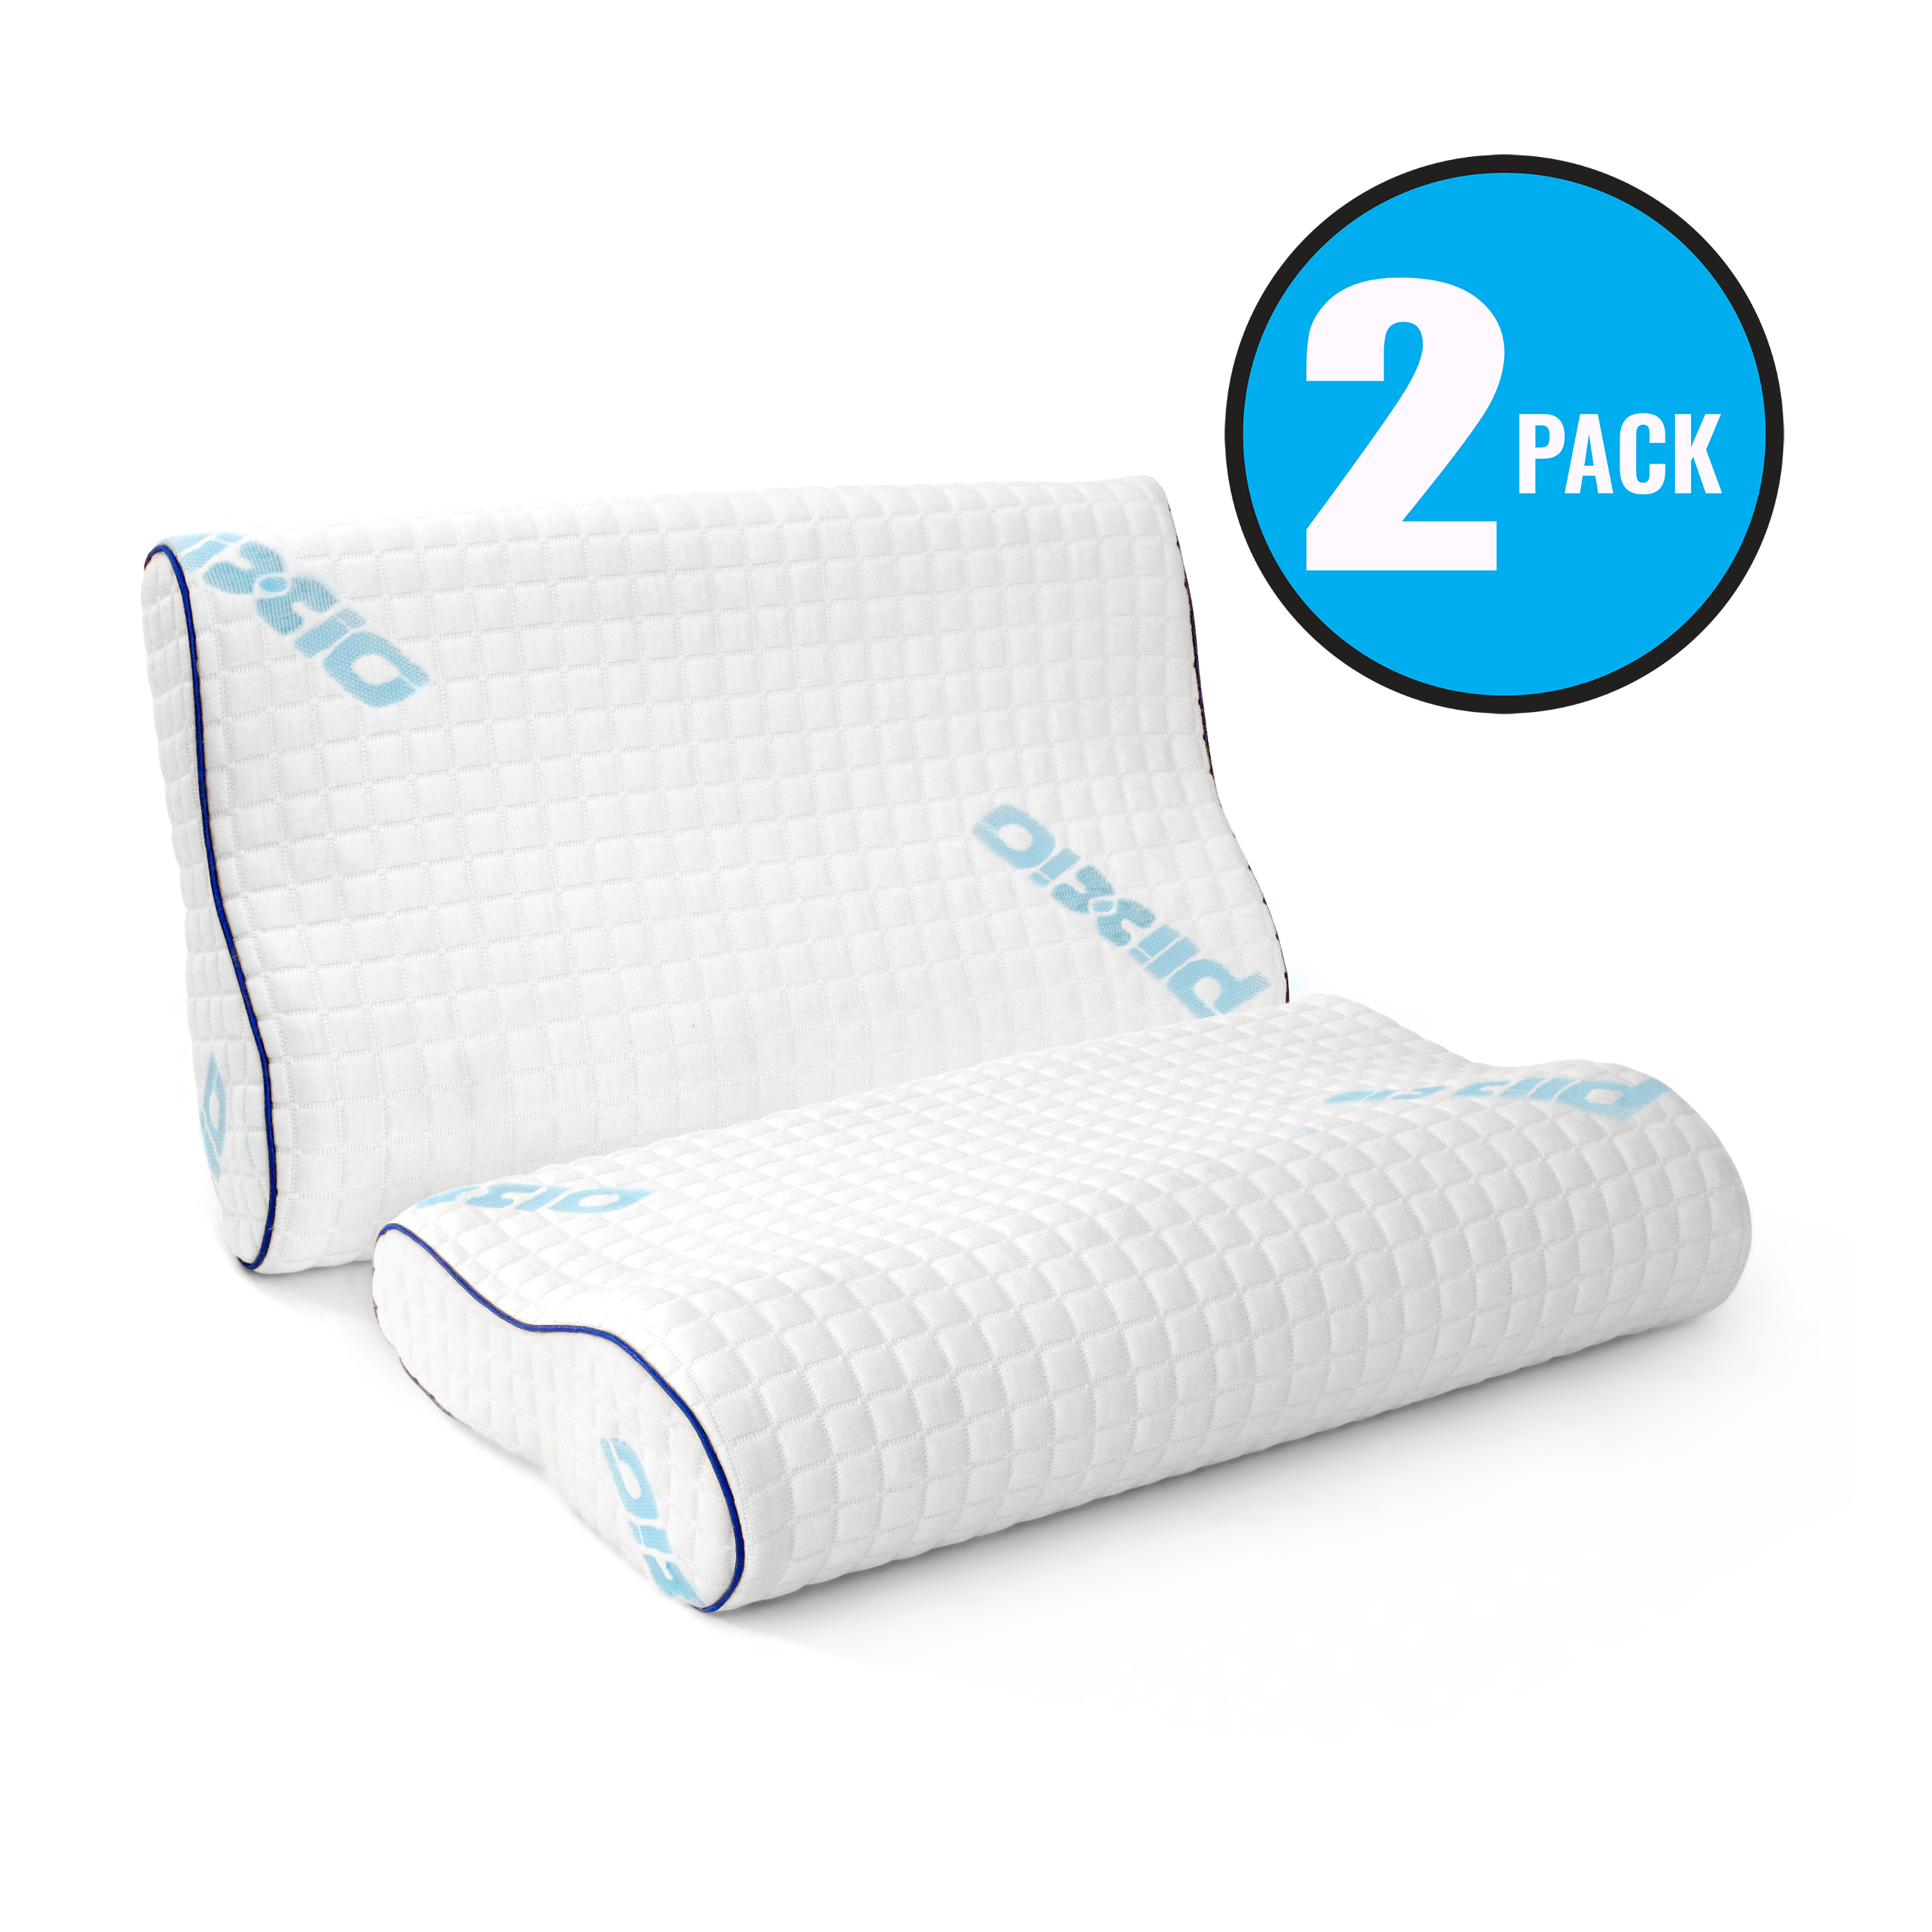 2 Pack Plixio Memory Foam Contour Pillow with Hypoallergenic Bamboo Cover— Orthopedic Cervical Back and Neck Support Bed Pillow - Standard Size